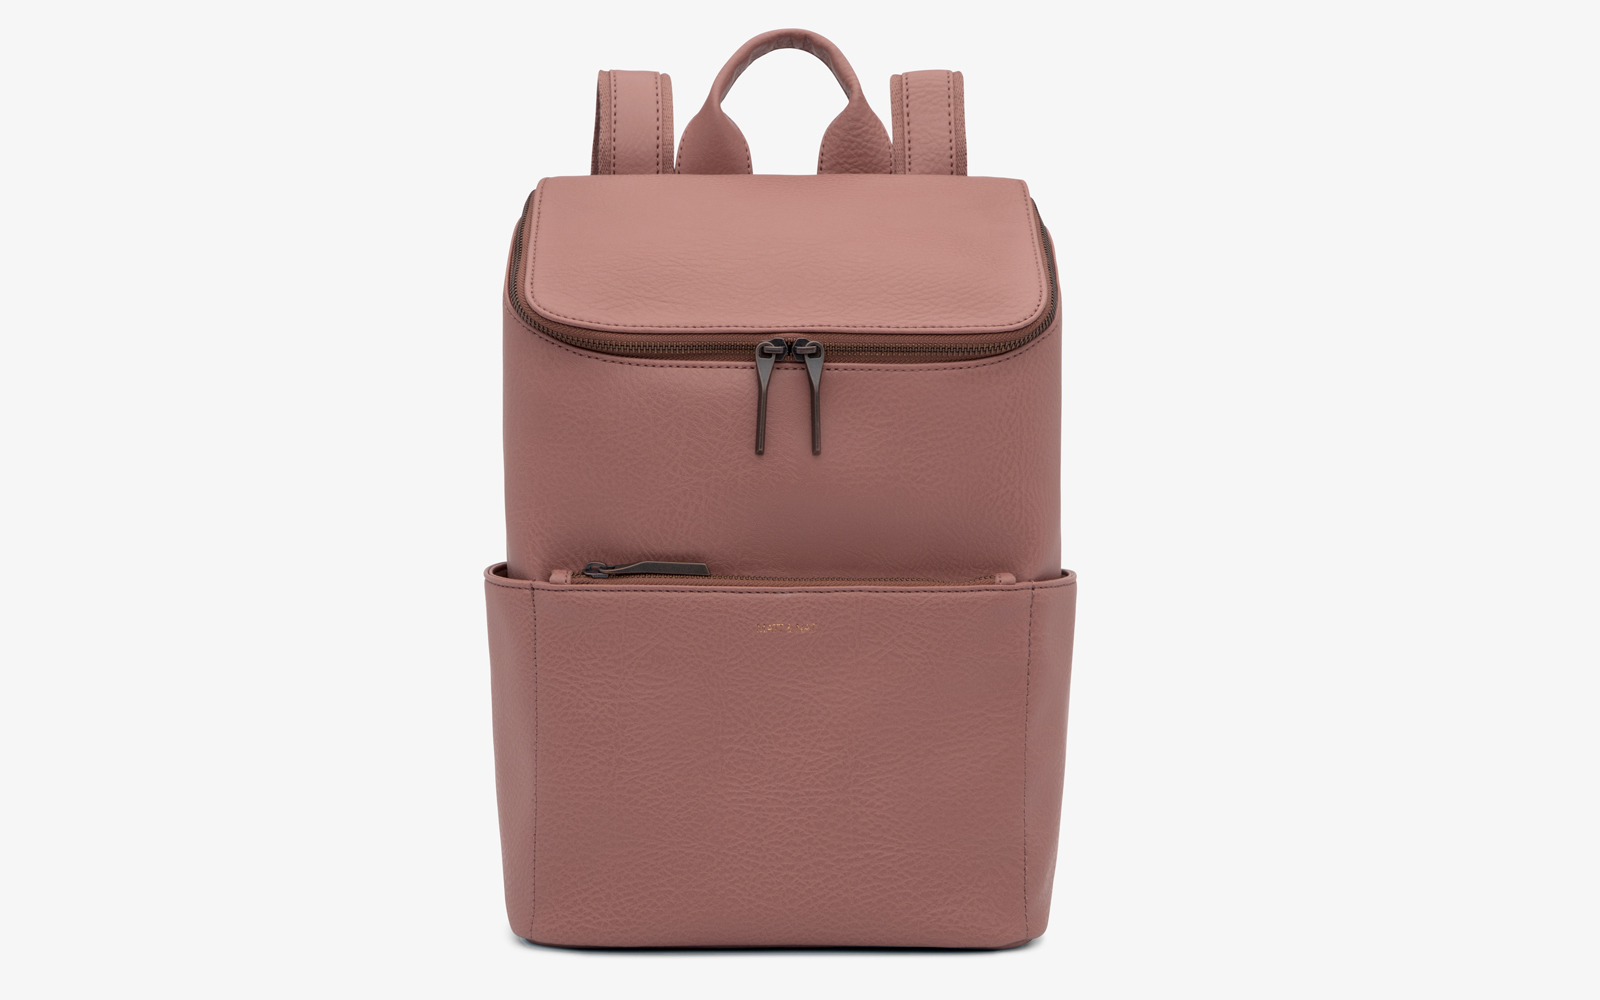 The Best Women's Leather Backpacks | Travel + Leisure